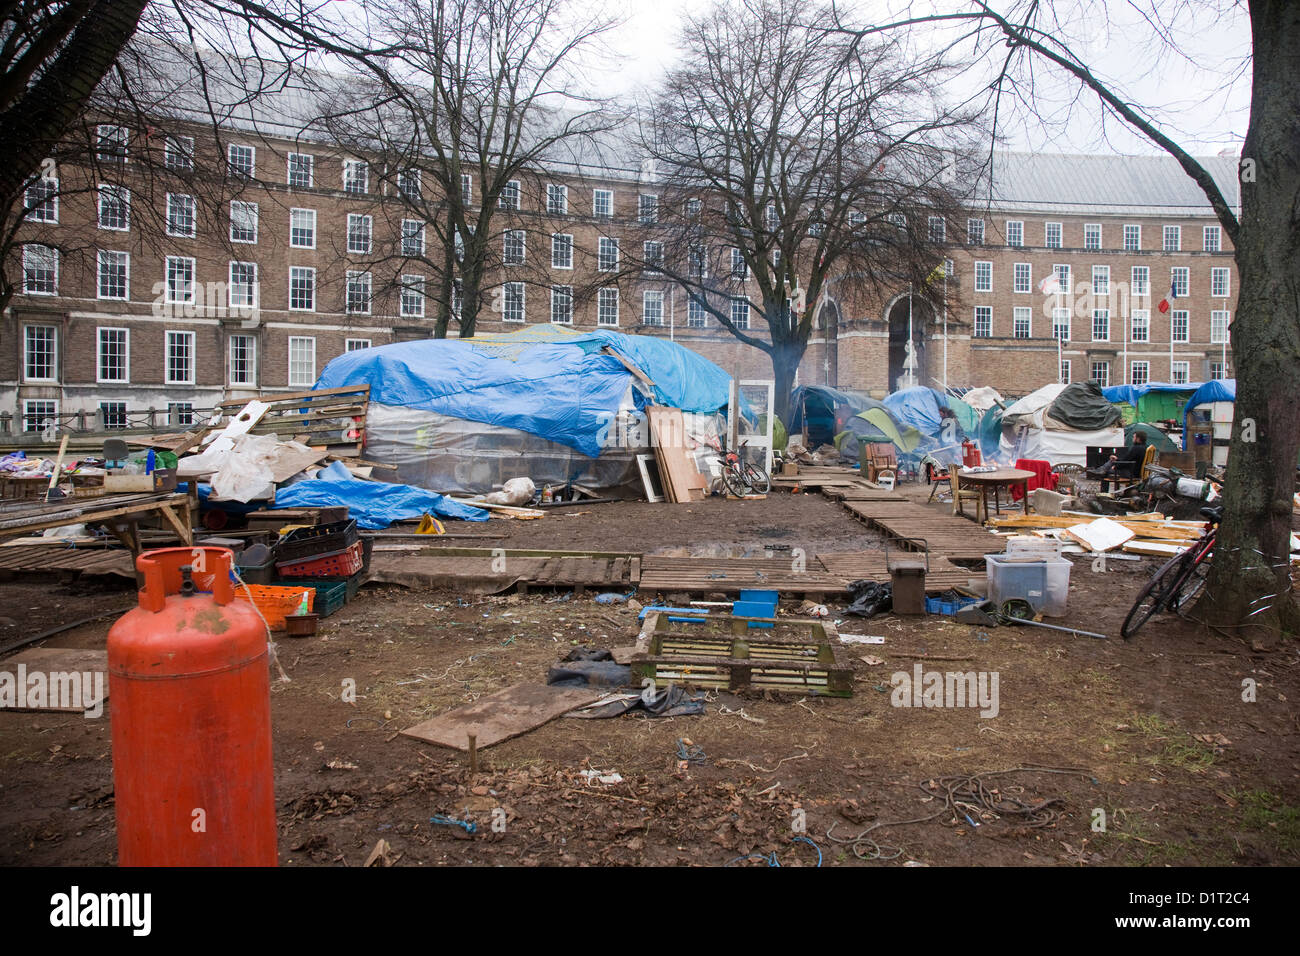 The mess and destruction left behind by protestors at the 'Occupy Bristol' camp - Stock Image